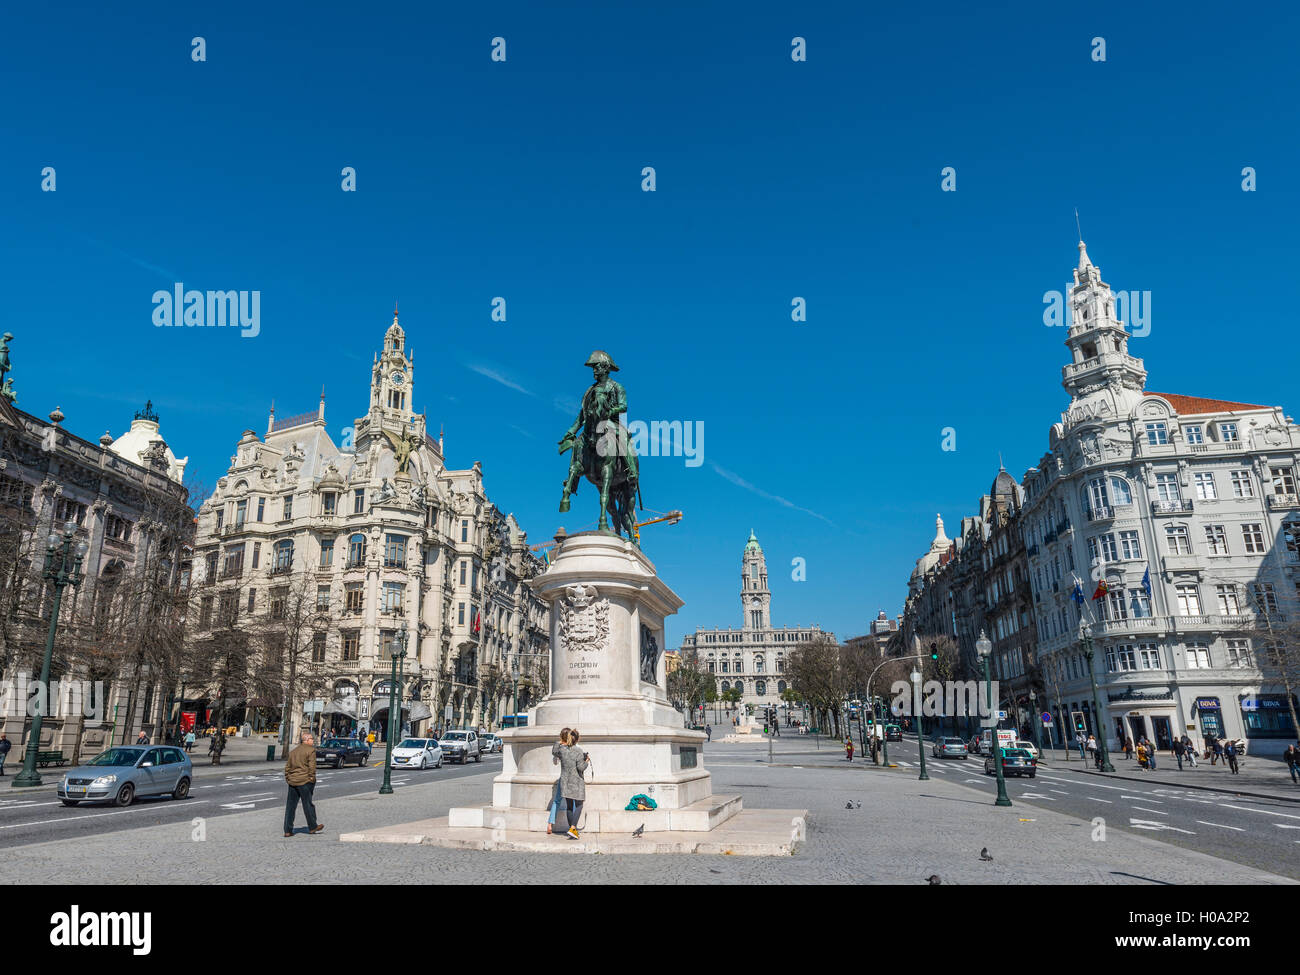 Equestrian statue of Dom Pedro IV, Aliados Avenue and townhall, Porto, District of Porto, Portugal - Stock Image